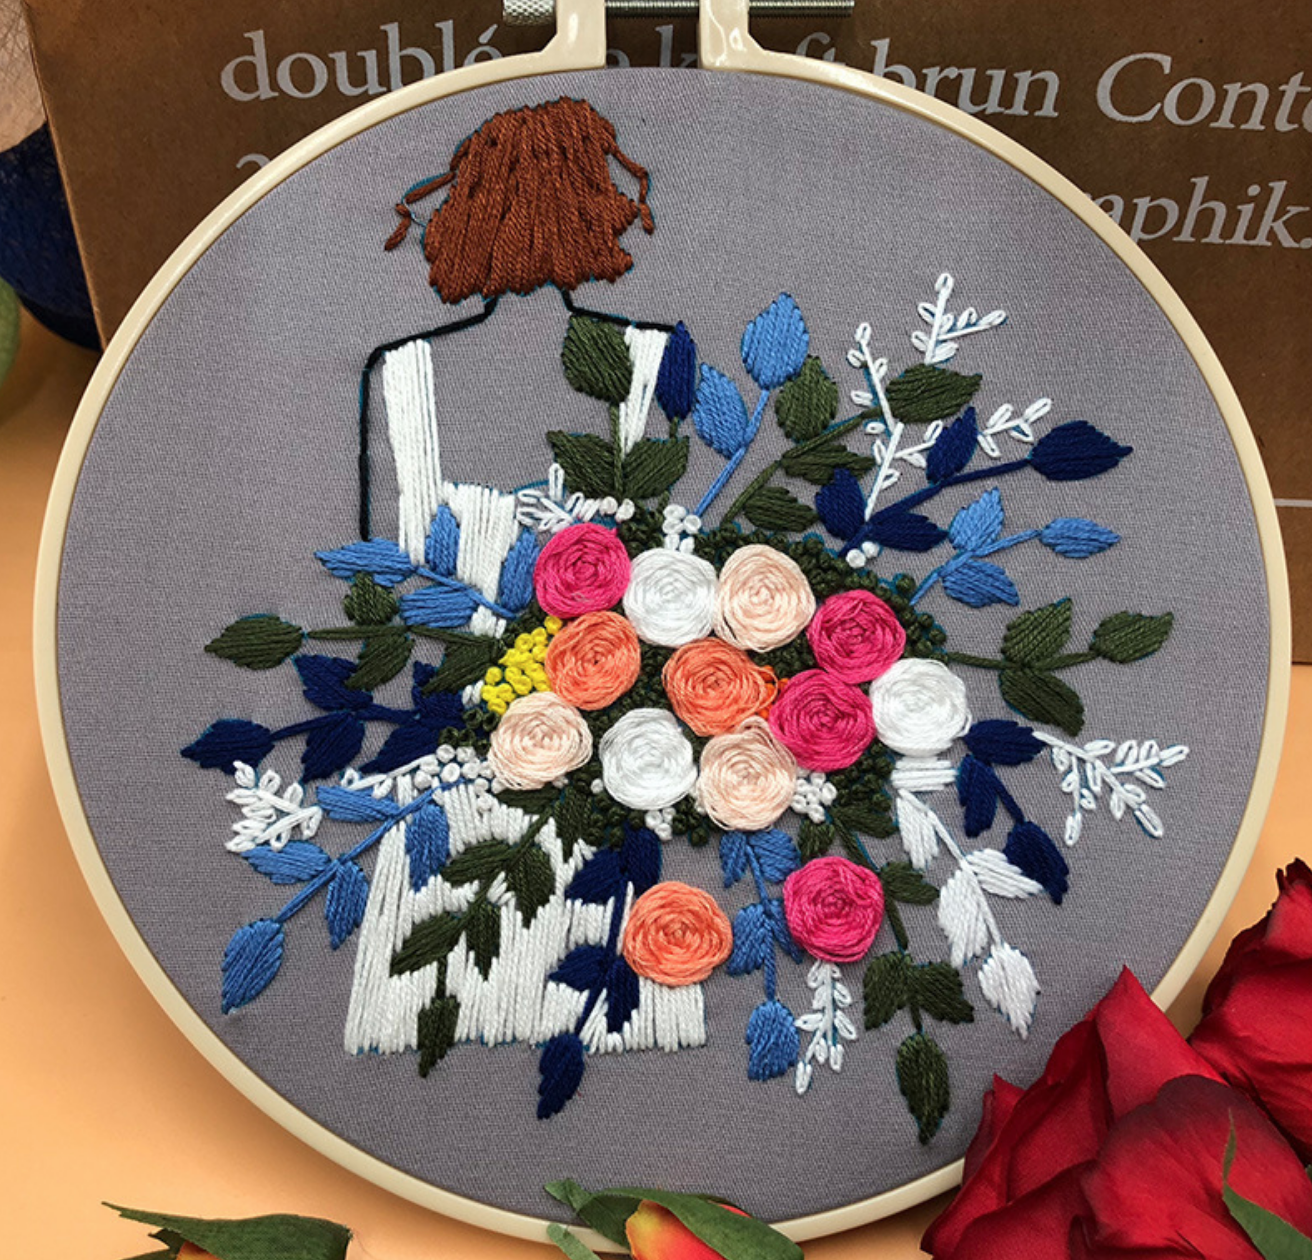 Short Brunette with Pink/White Bouquet Embroidery